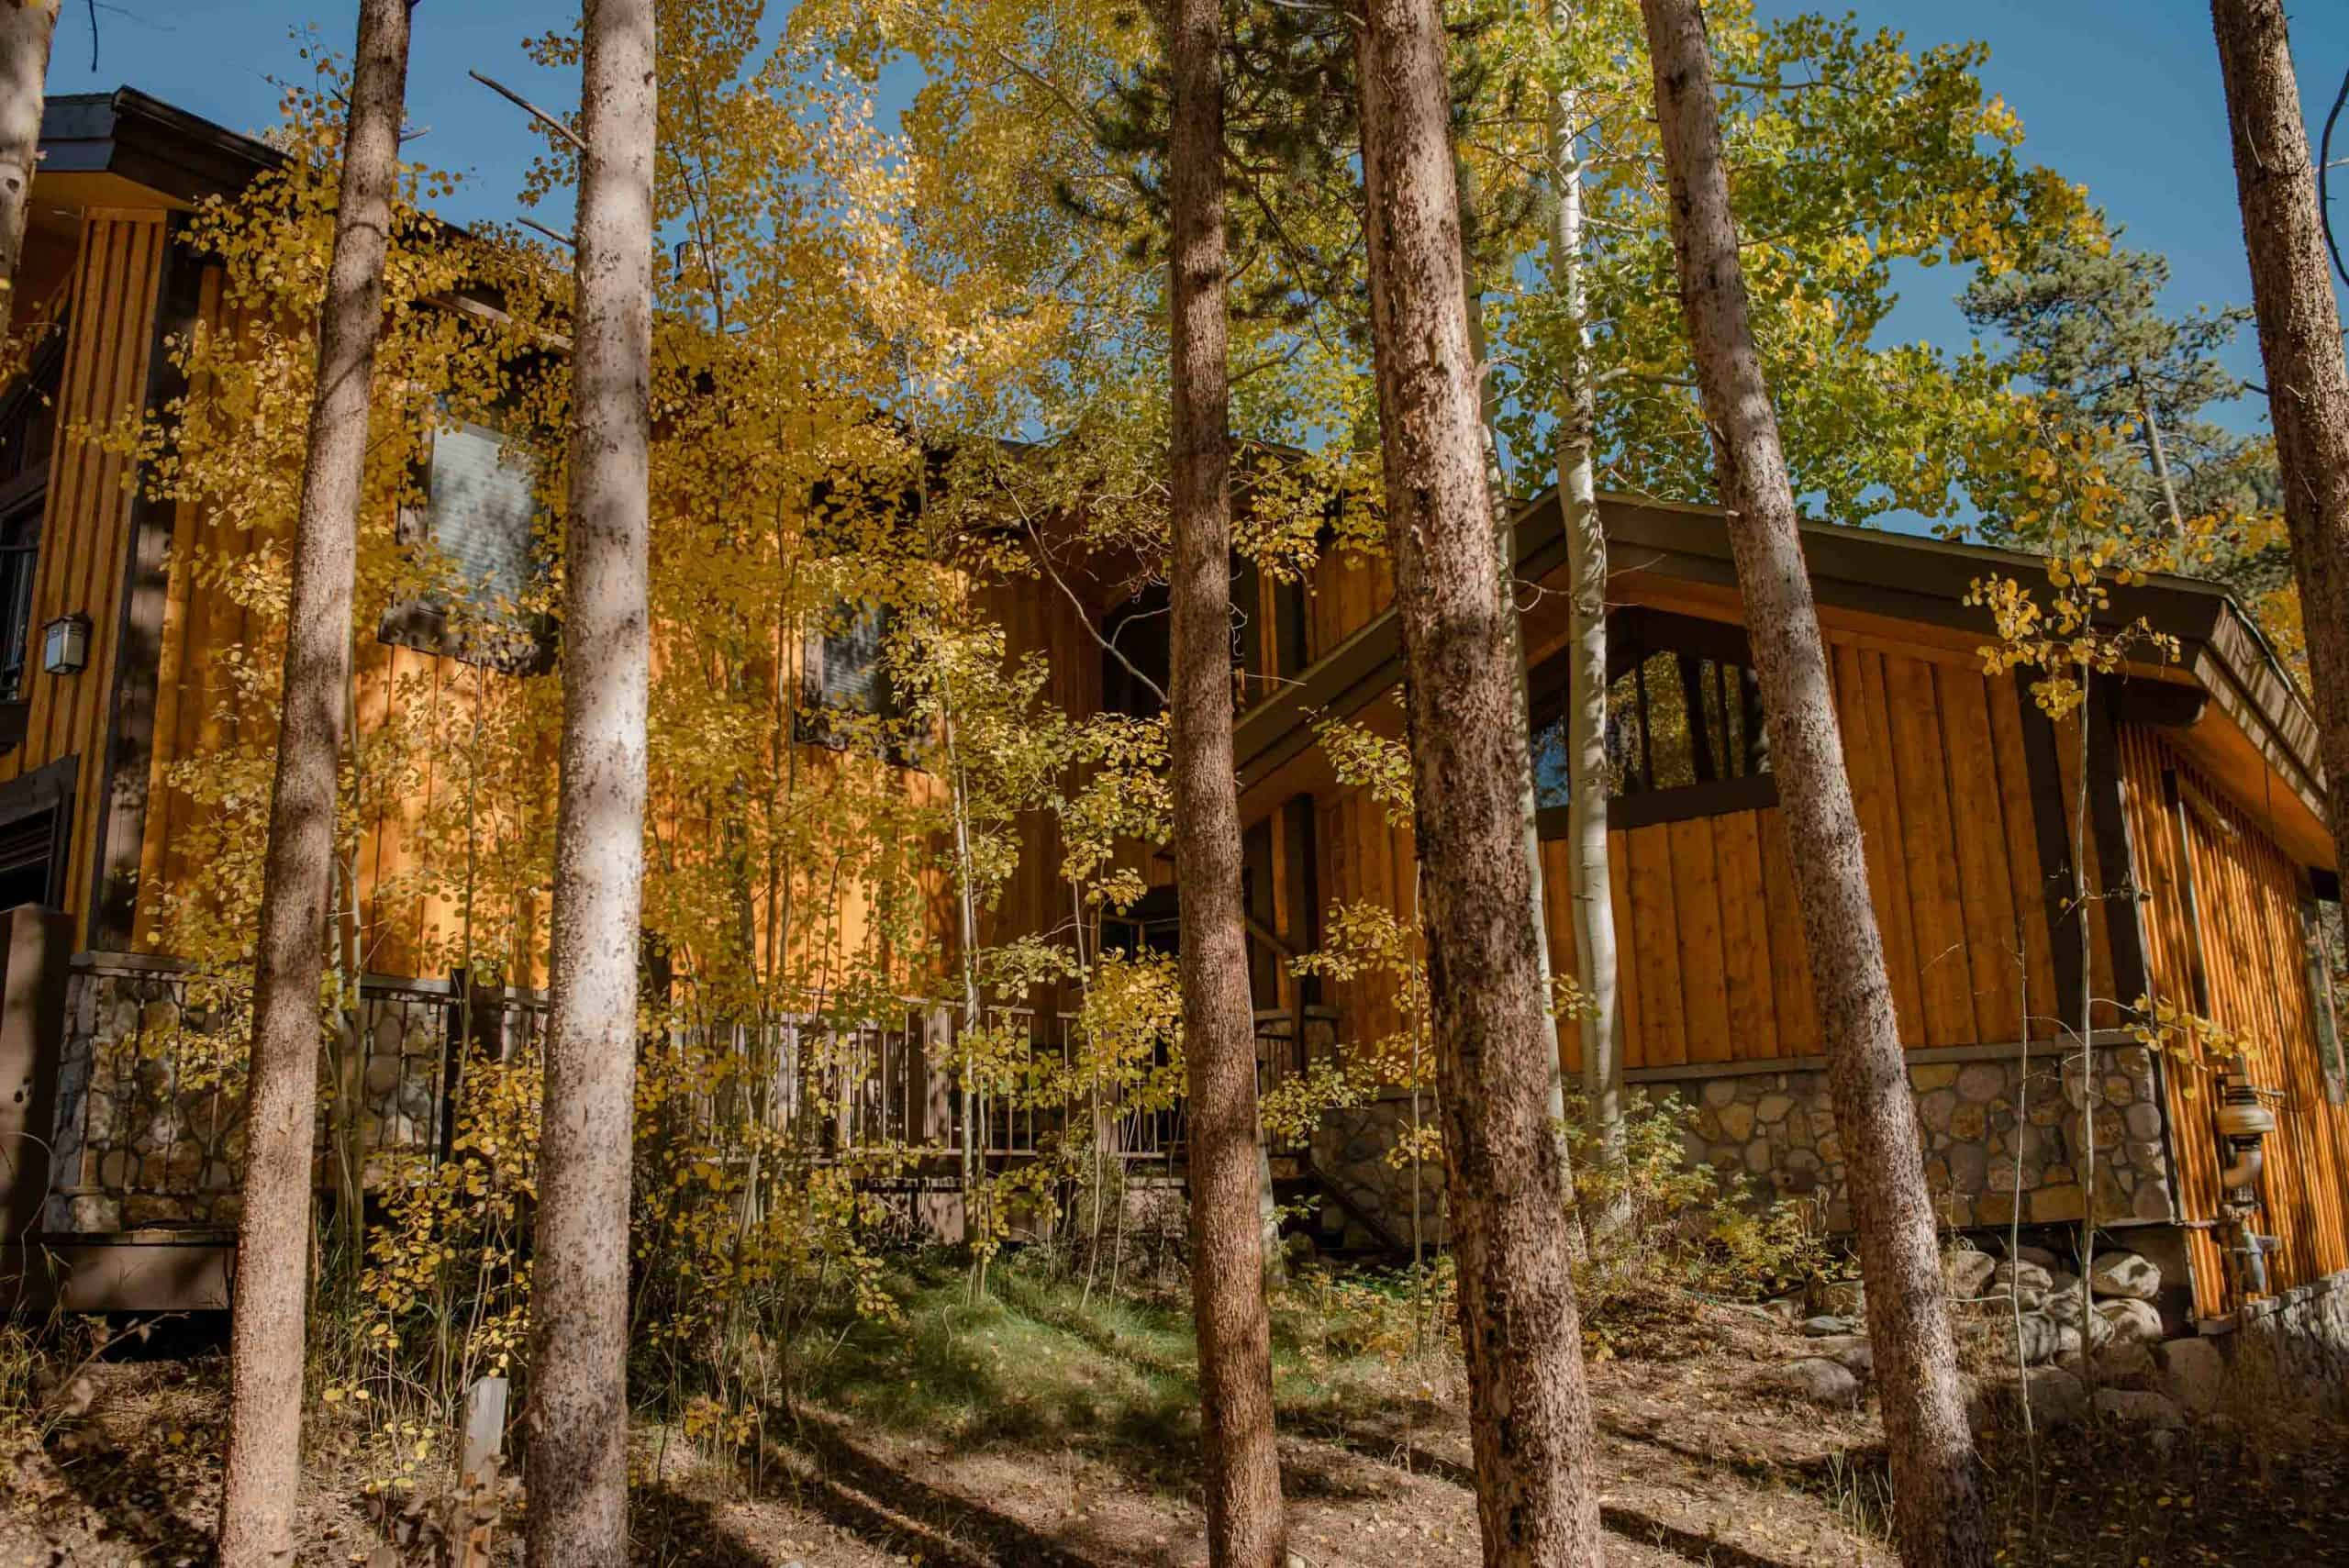 view of an airbnb wedding venue in Colorado as the aspen leaves are starting to turn colors